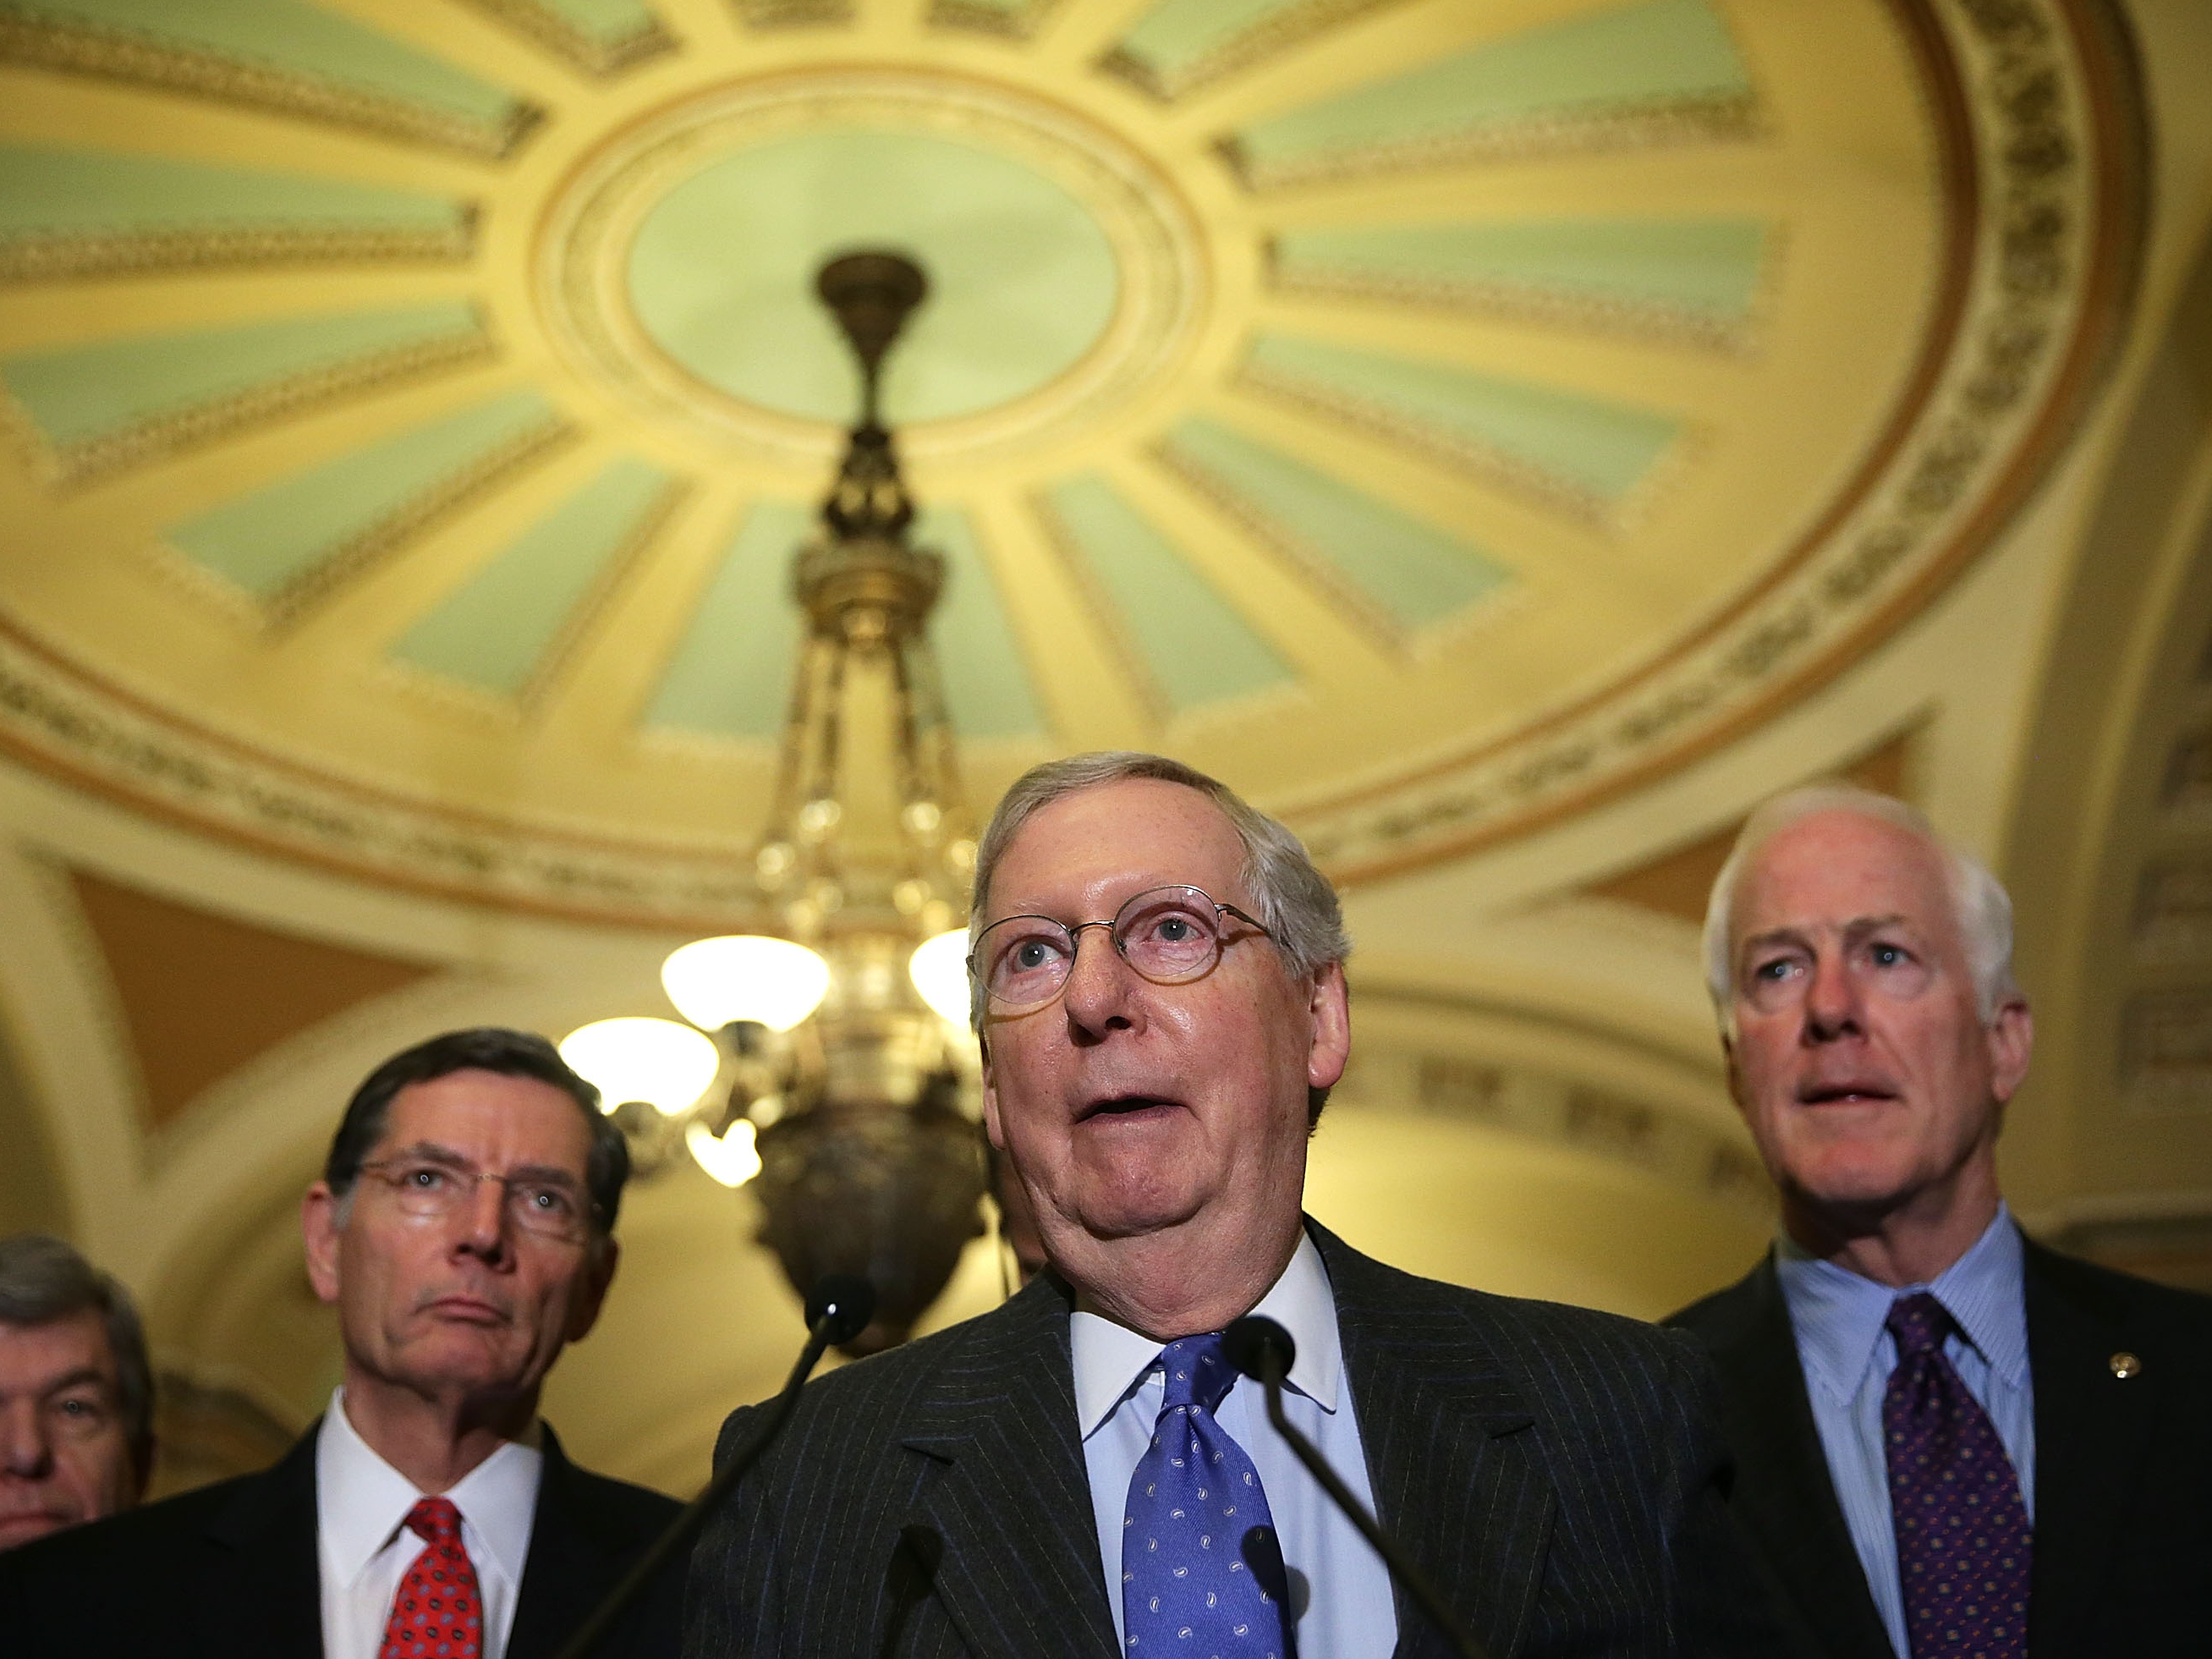 Senate Majority Leader Mitch McConnell (center), R-Ky., speaks to members of the media as fellow Republican Sen. John Barrasso of Wyoming (left) and Senate Majority Whip John Cornyn of Texas (right) listen after the Republican weekly policy luncheon on Jan. 20. (Alex Wong/Getty Images)